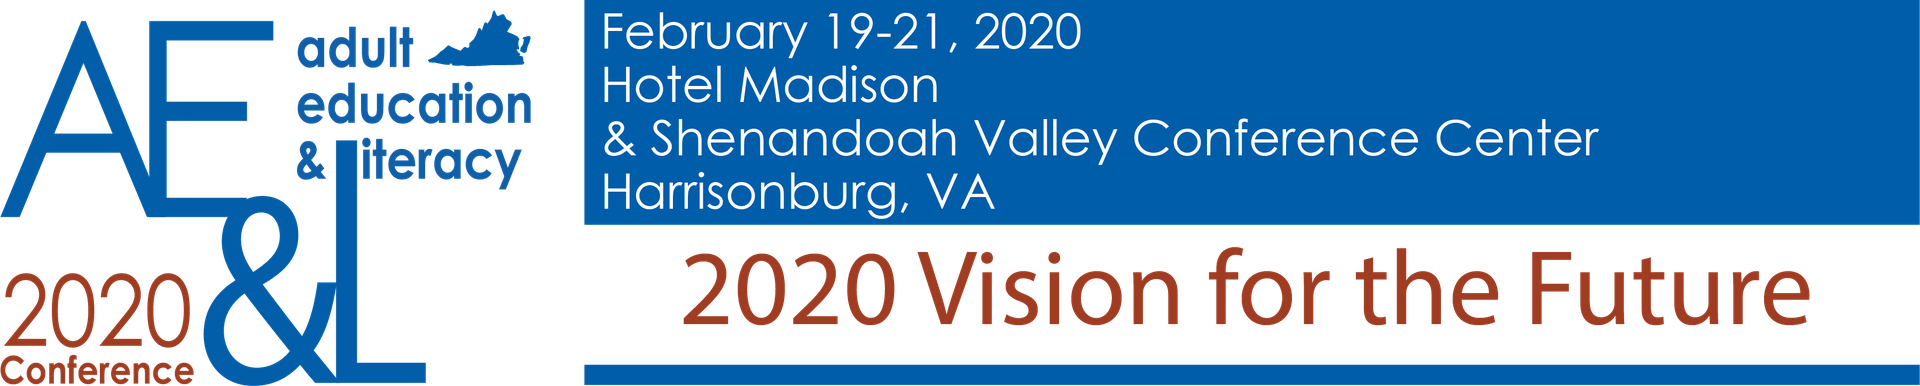 Conference logo which reads Adult Education & Literacy 2020 Conference, February 19-21, 2020, Hotel Madison & Shenandoah Valley Conference Center, Harrisonburg, VA, 2020 Vision for the Future